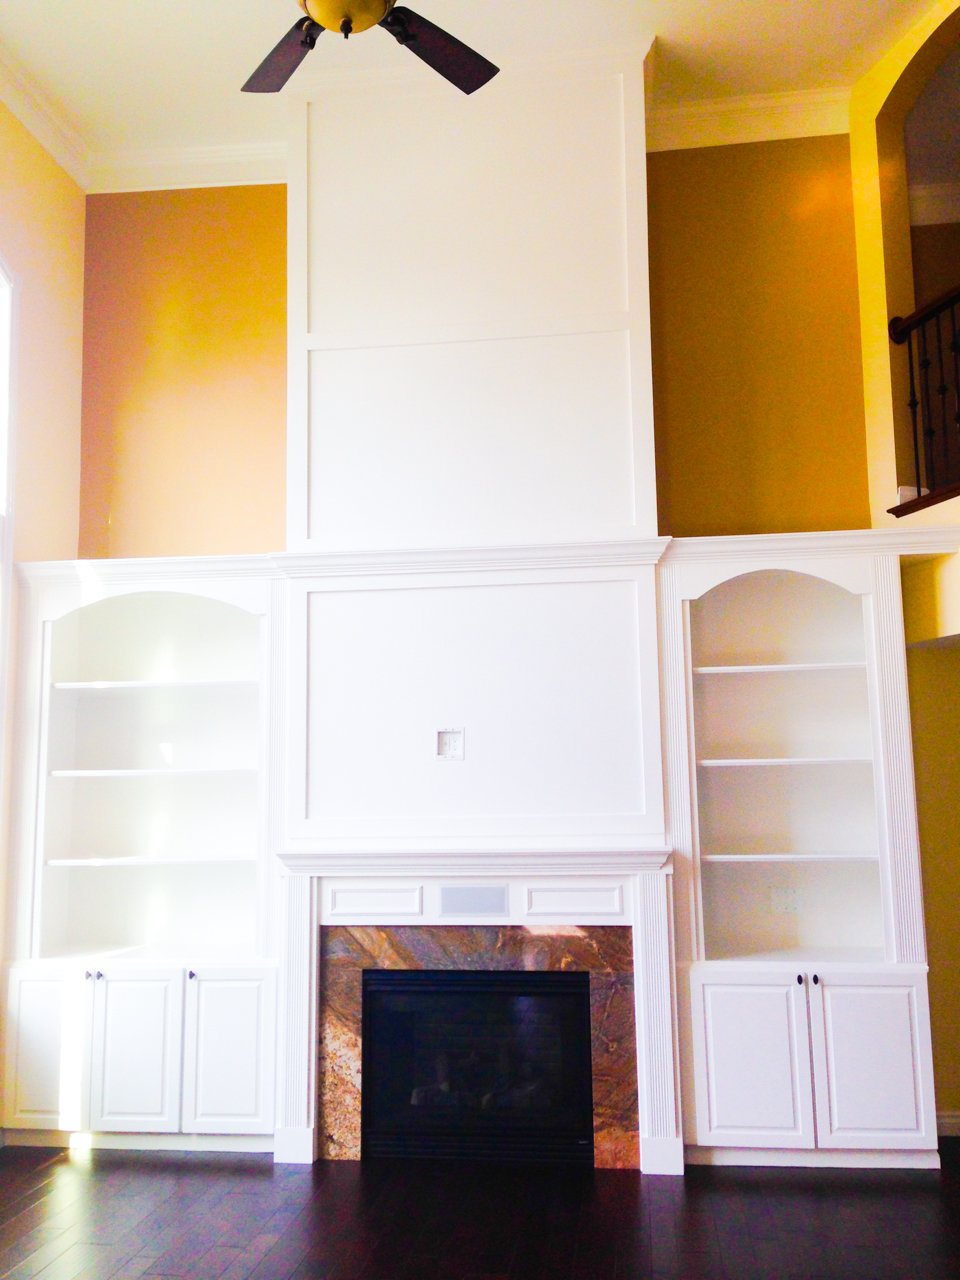 Building relationships one custom home at a time. General Contracting in the Fenton, South Lyon, Novi, Canton, Clarkston, Orion, and other Southwest Michigan areas Custom bookcase